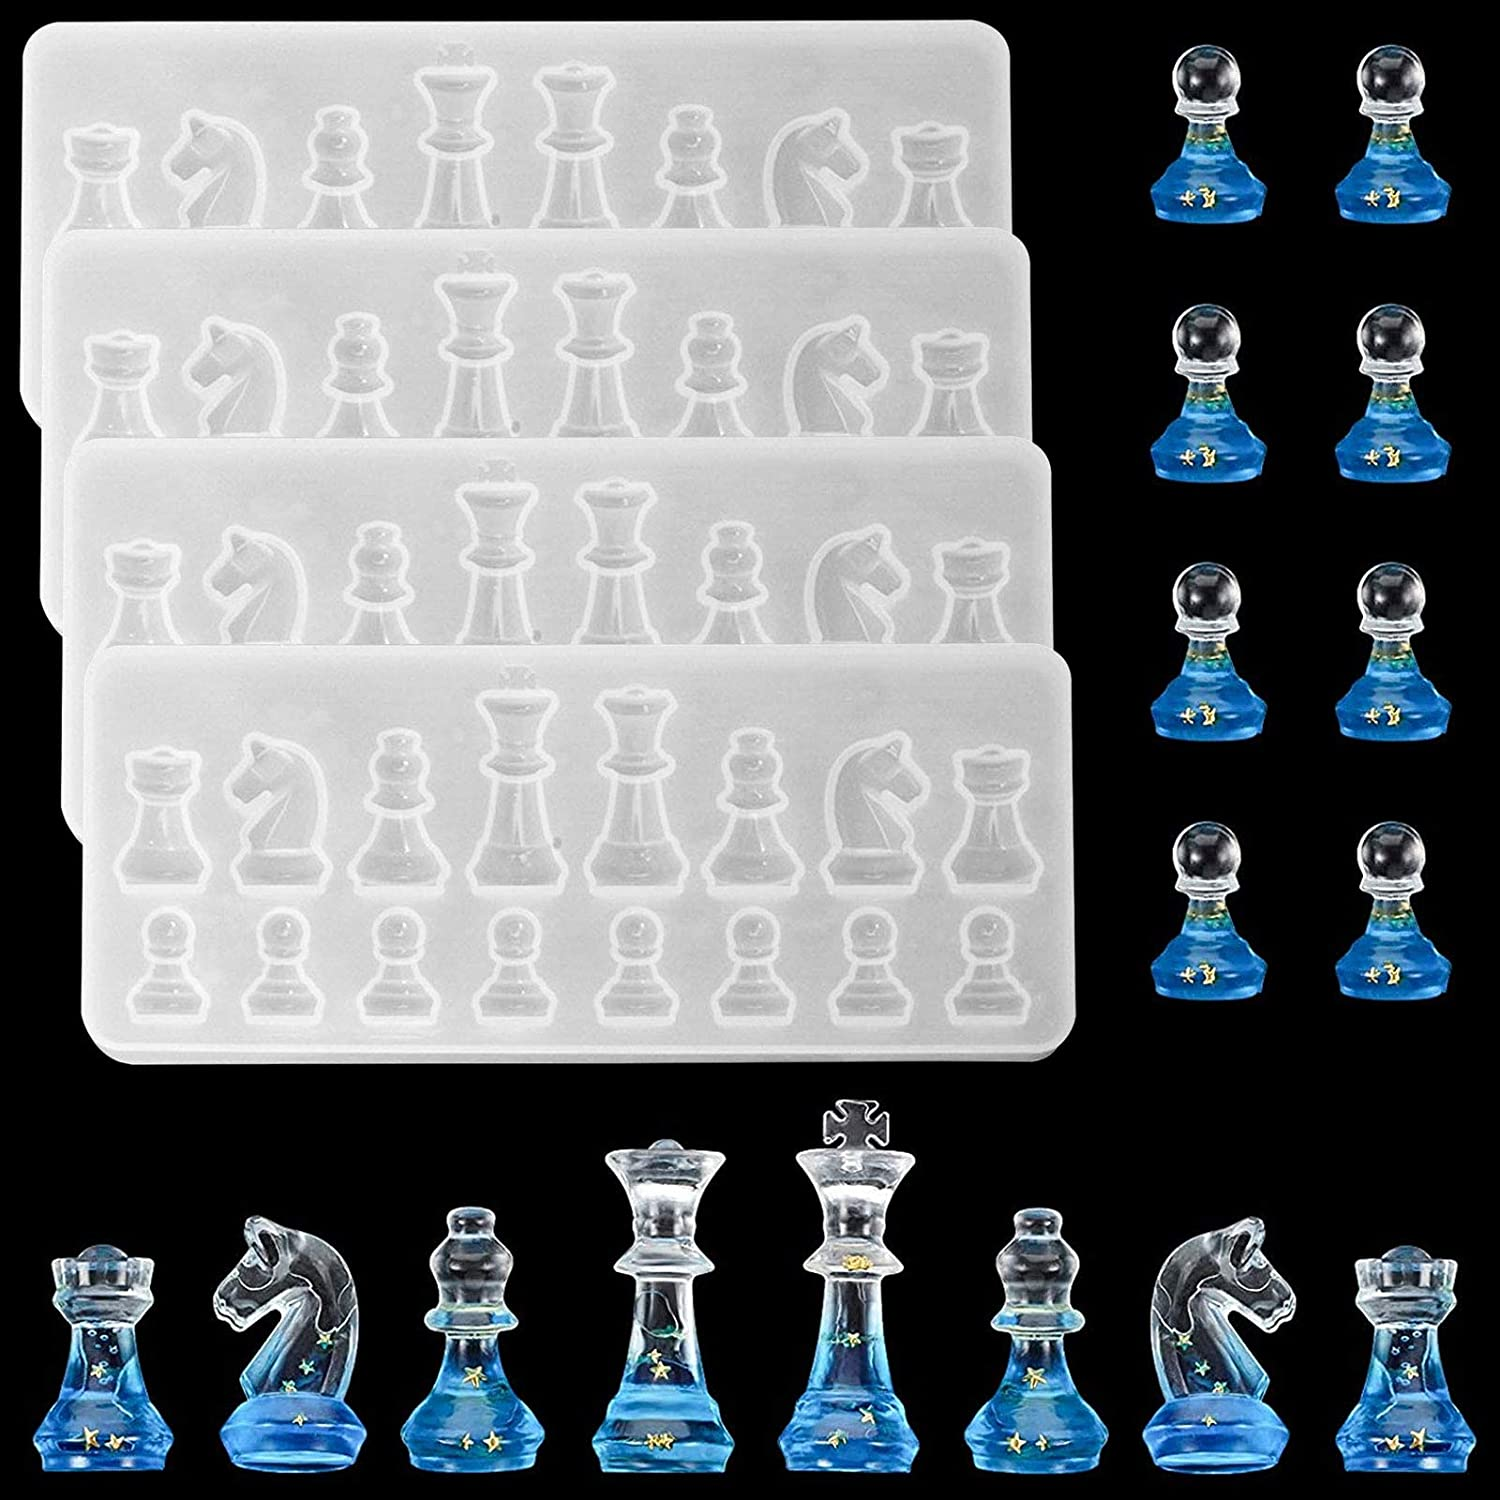 3D Chess Resin Mold,for Resin Casting - Also Ideal for Polymer Clay,Crafting,Making Chocolate,Ice Cubes,Candy,Fondant Cake Decorating etc-4 pcs